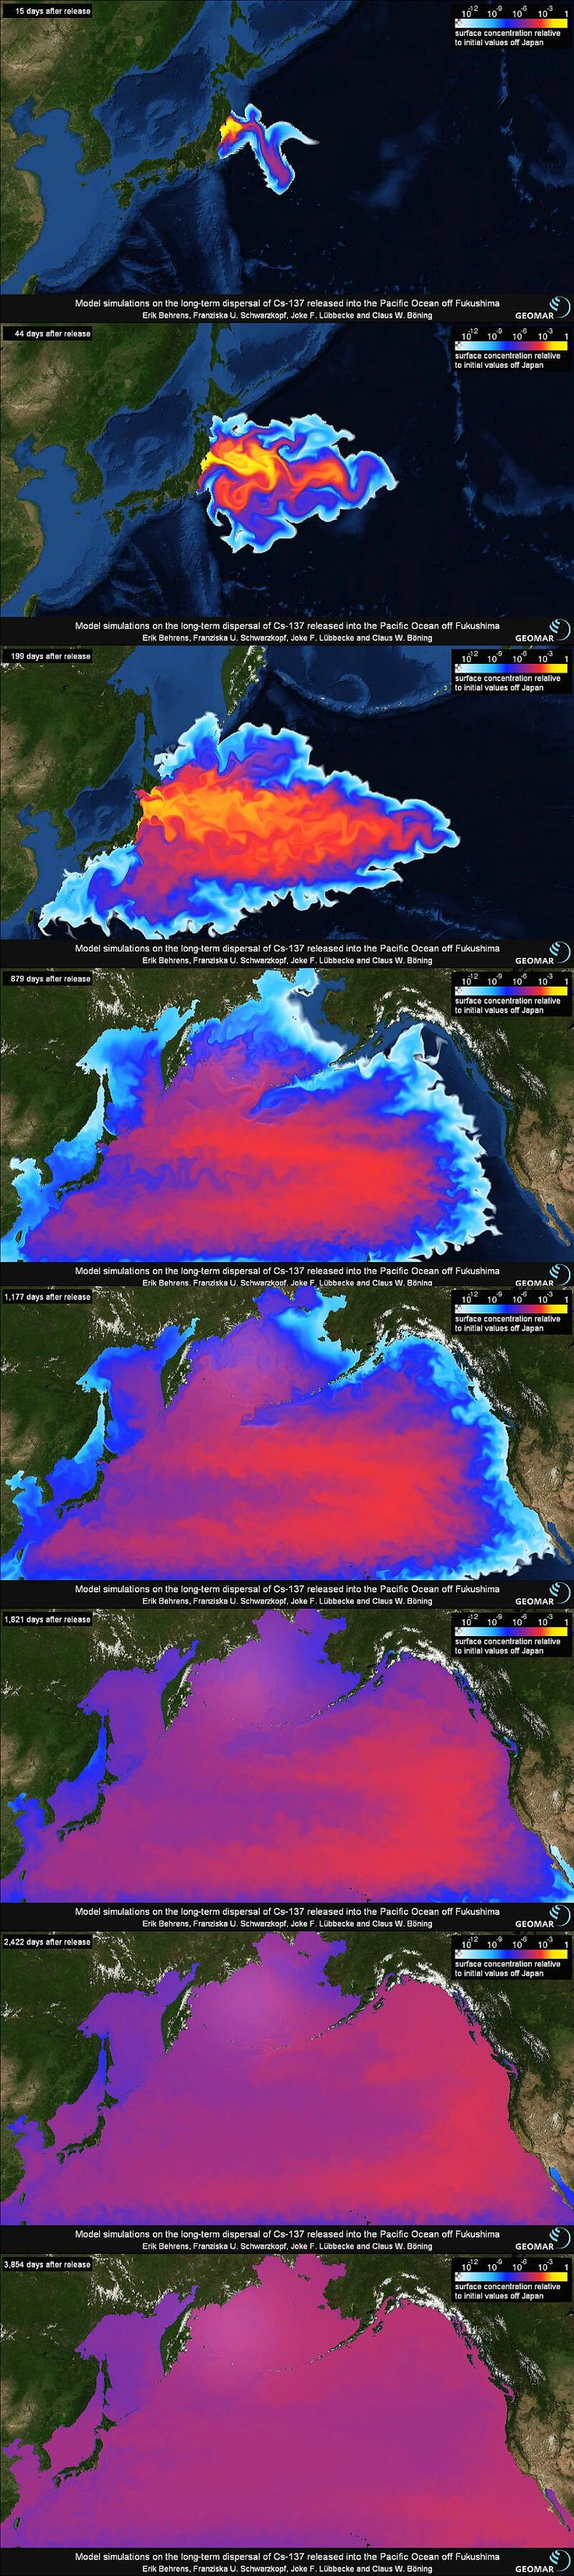 Fukushima radiation. This is very important it will and is already having an impact on the U.S. This is going to destroy us all and no one cares!!!